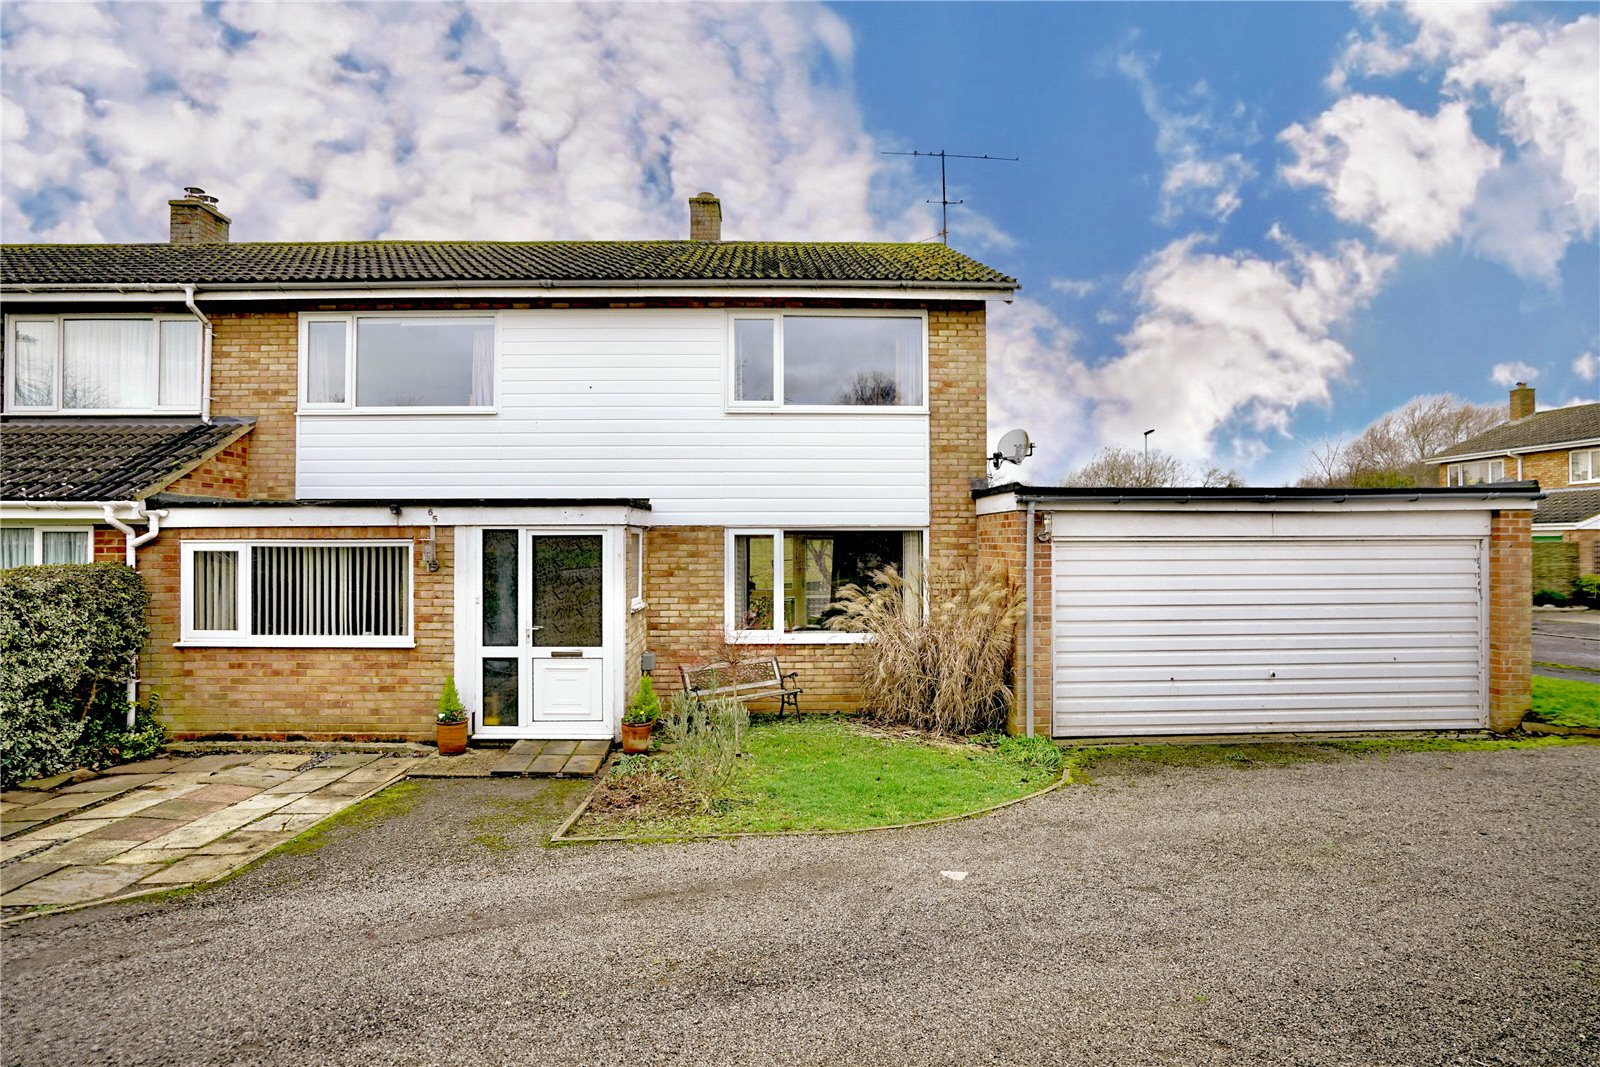 3 bed house for sale in Green Acres, Gamlingay 1